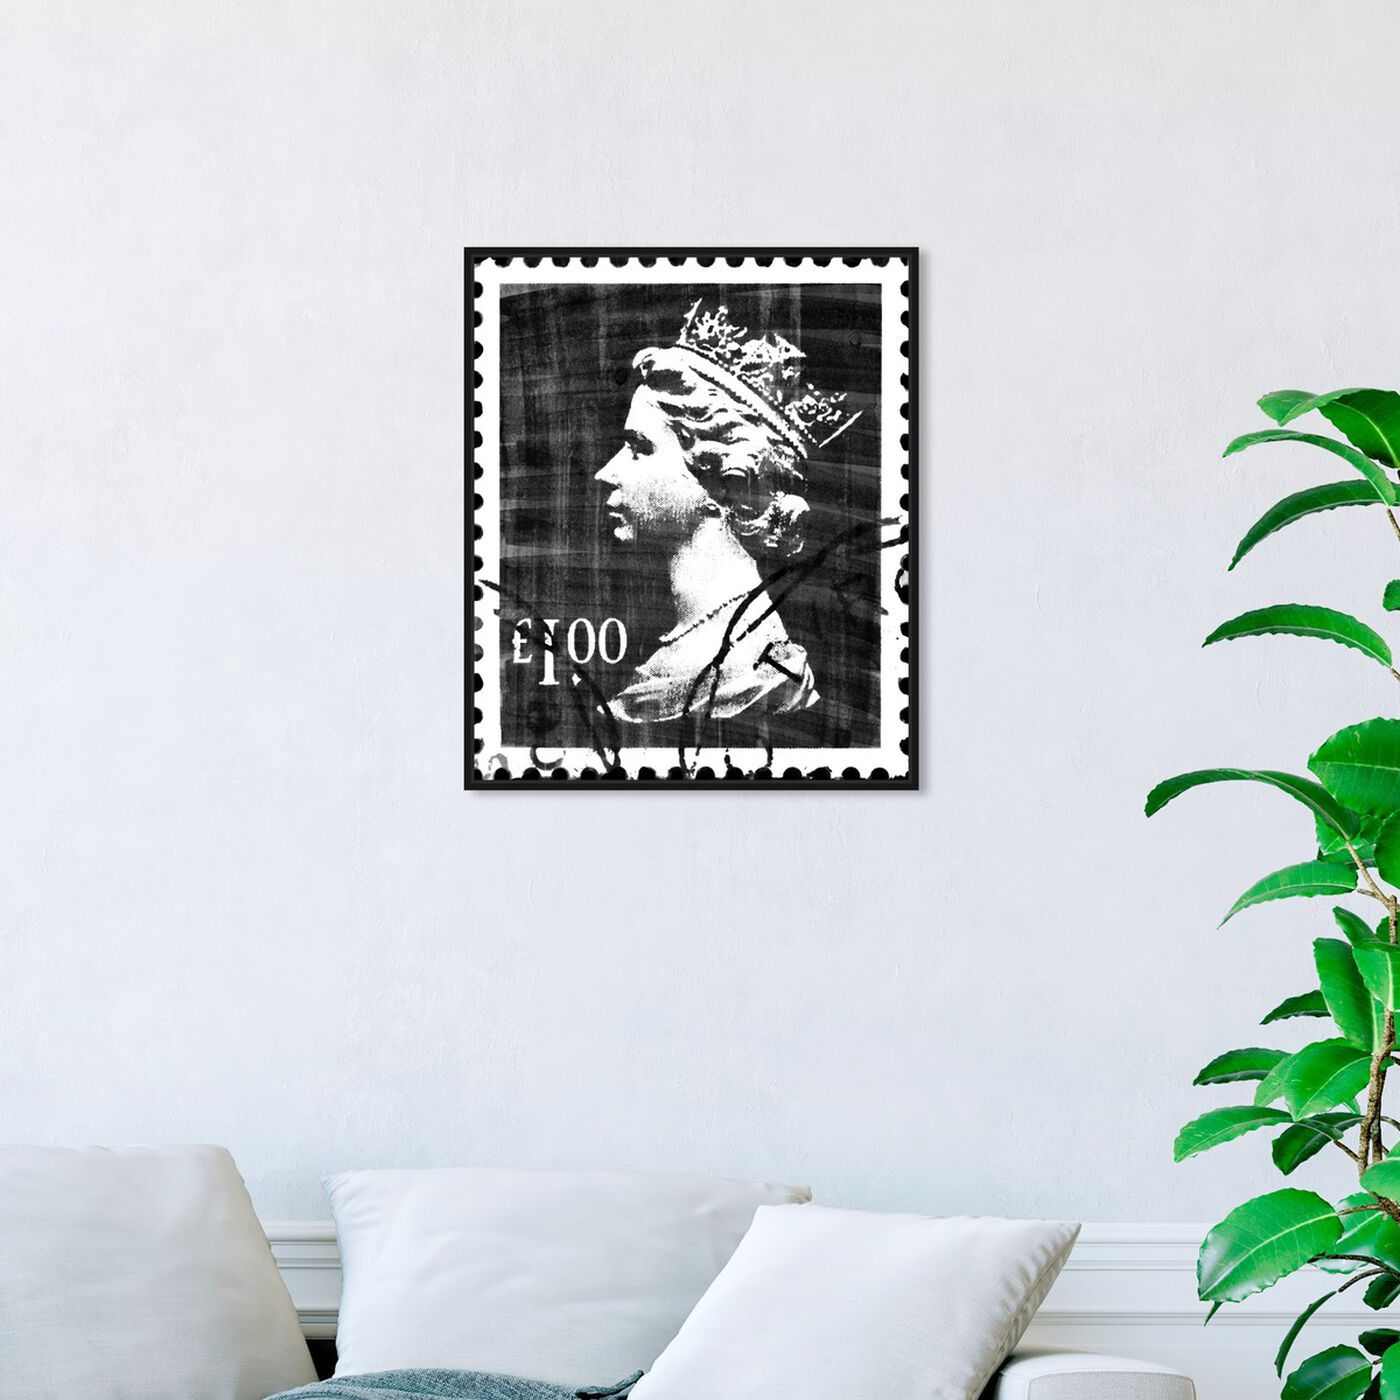 Hanging view of Save The Queen Two featuring advertising and posters art.